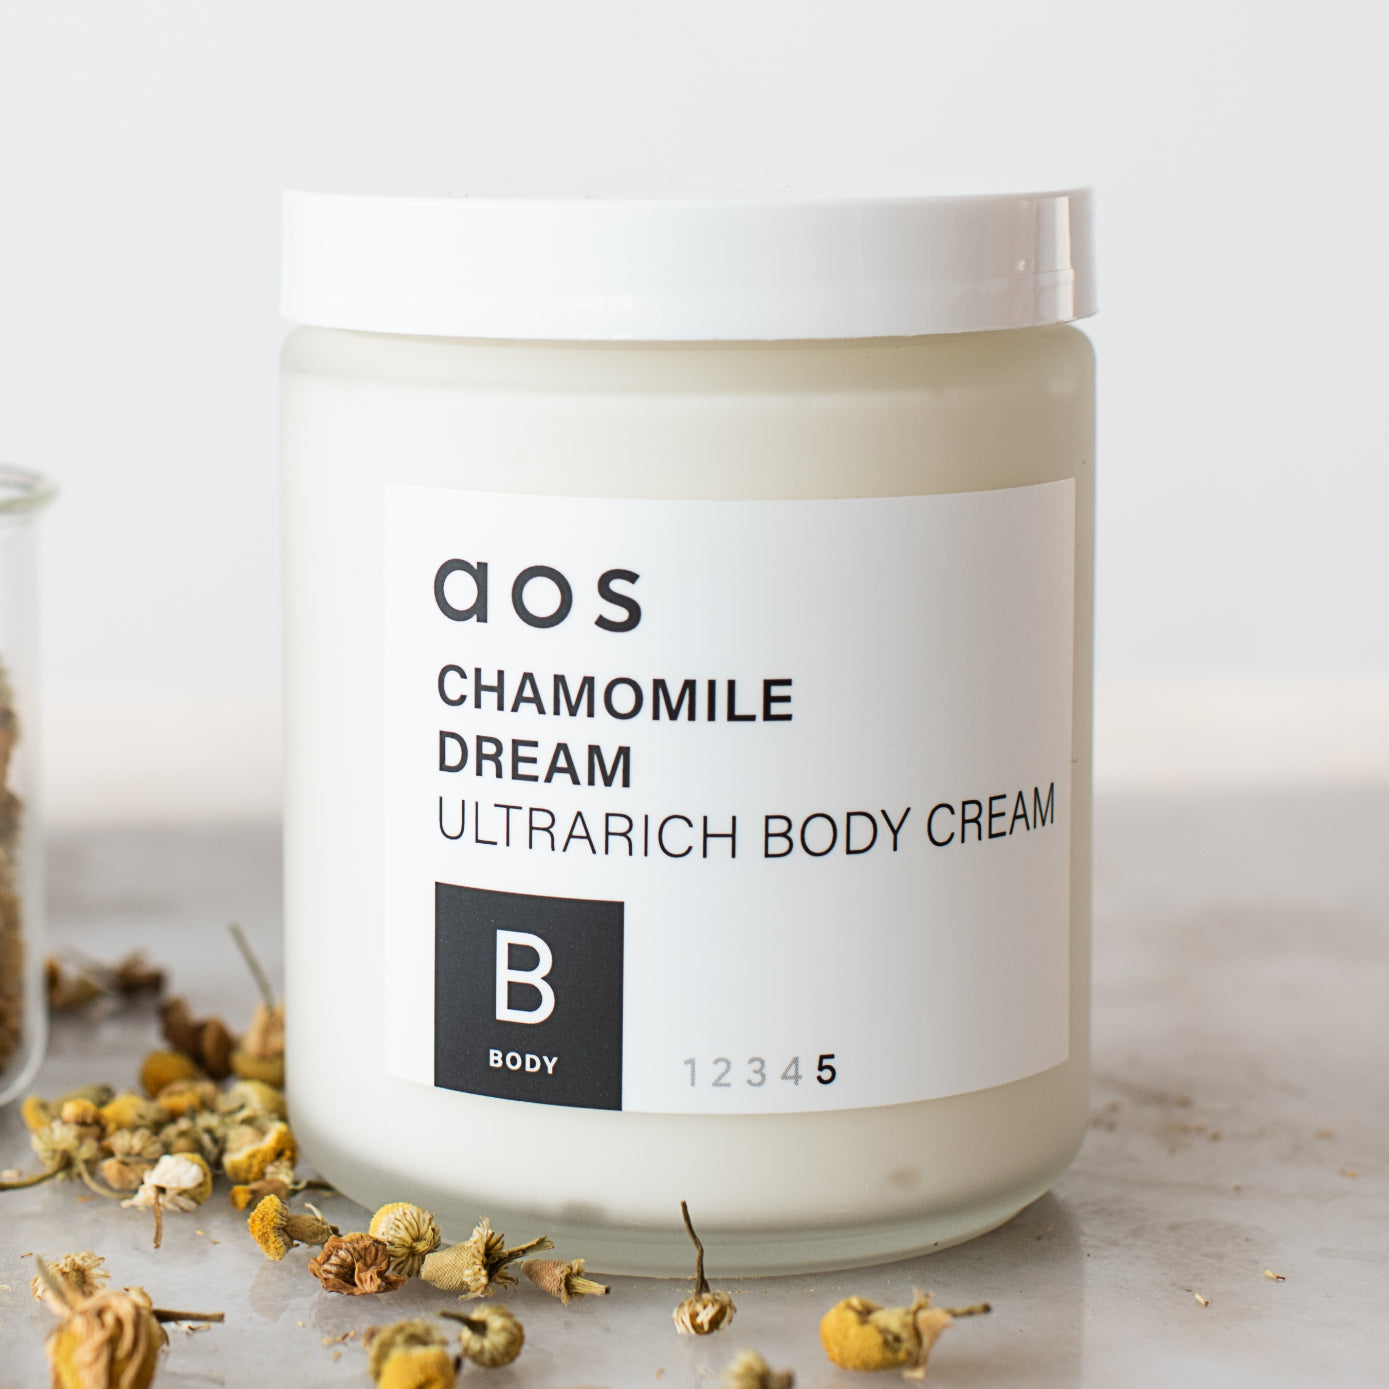 Chamomile Dream Ultrarich Body Cream